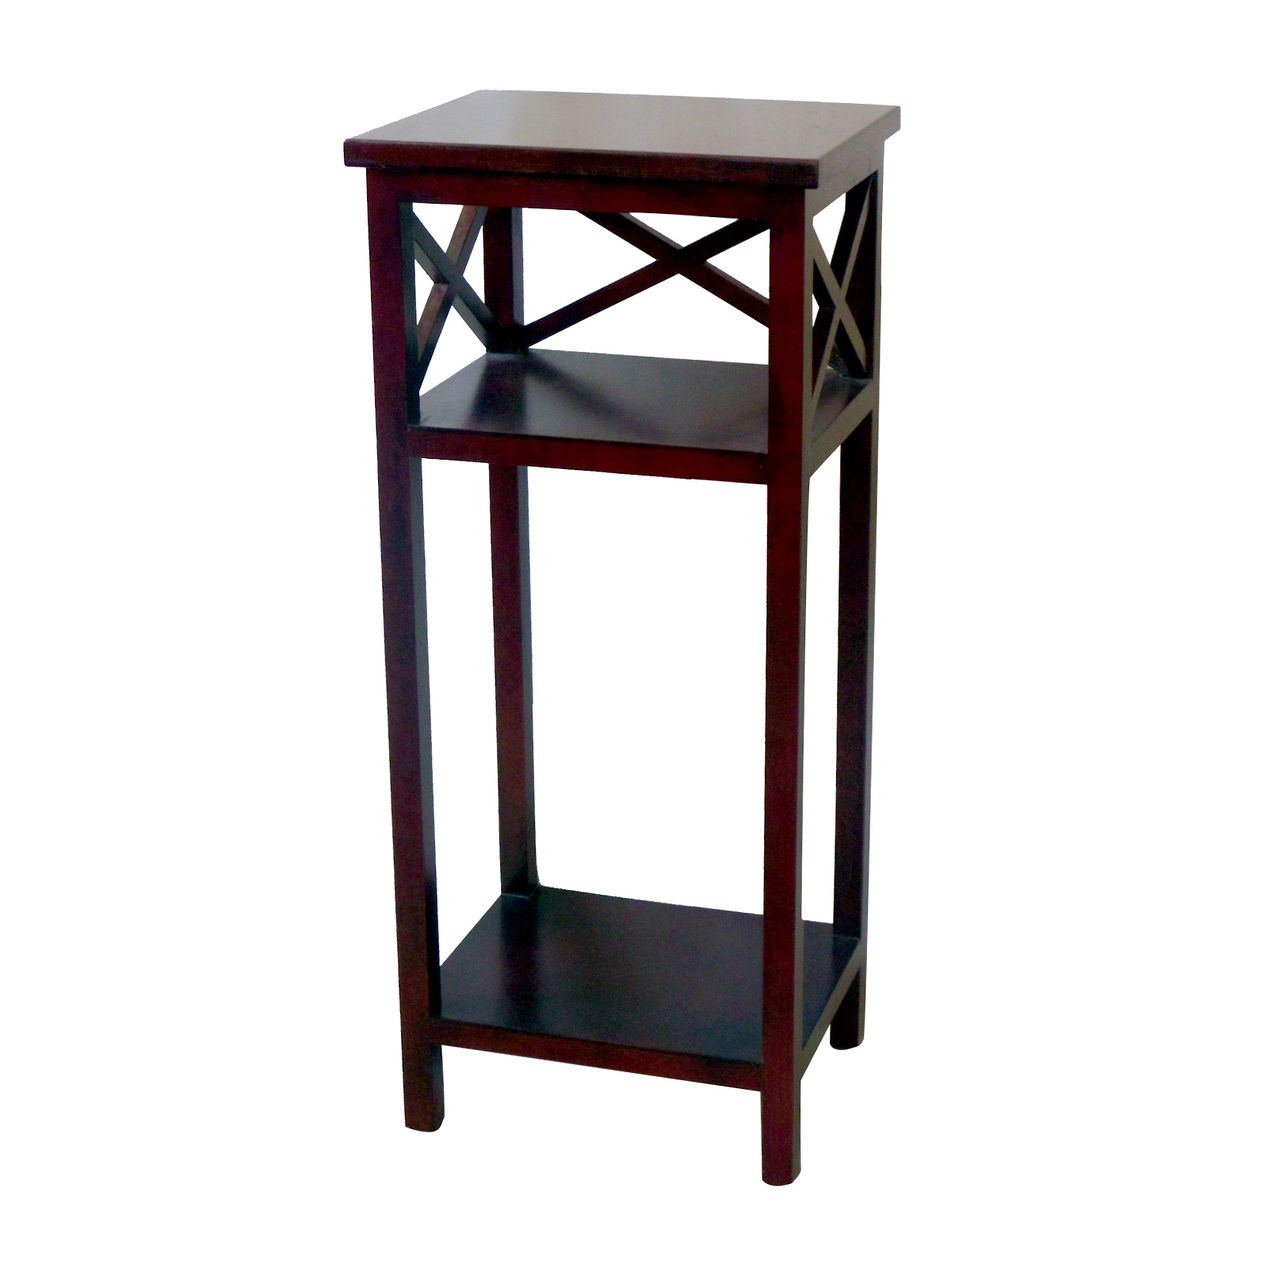 tier wooden accent table home tiered metal antique long modern legs nook plus diy outdoor side chest swivel coffee pub height kitchen aqua end garden beer cooler marble tops black